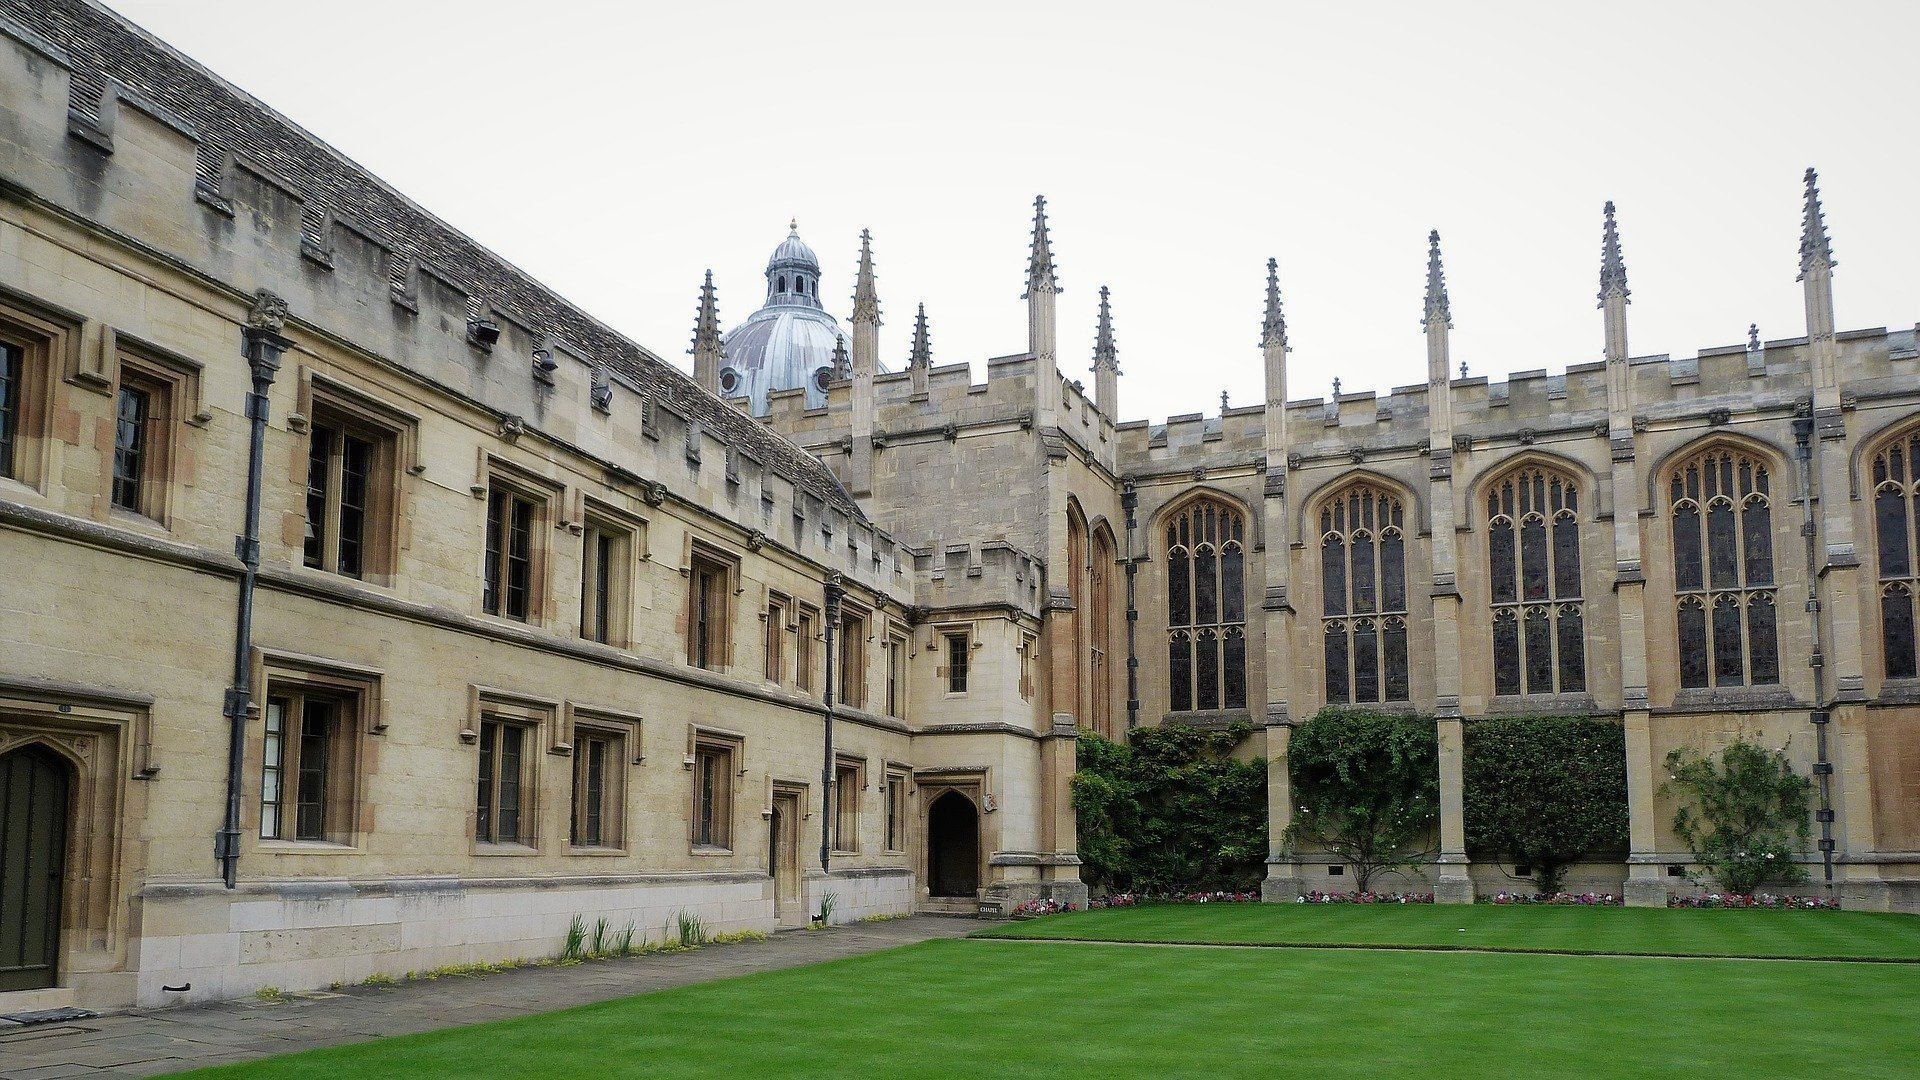 Oxford University backs local charities in COVID-19 community response